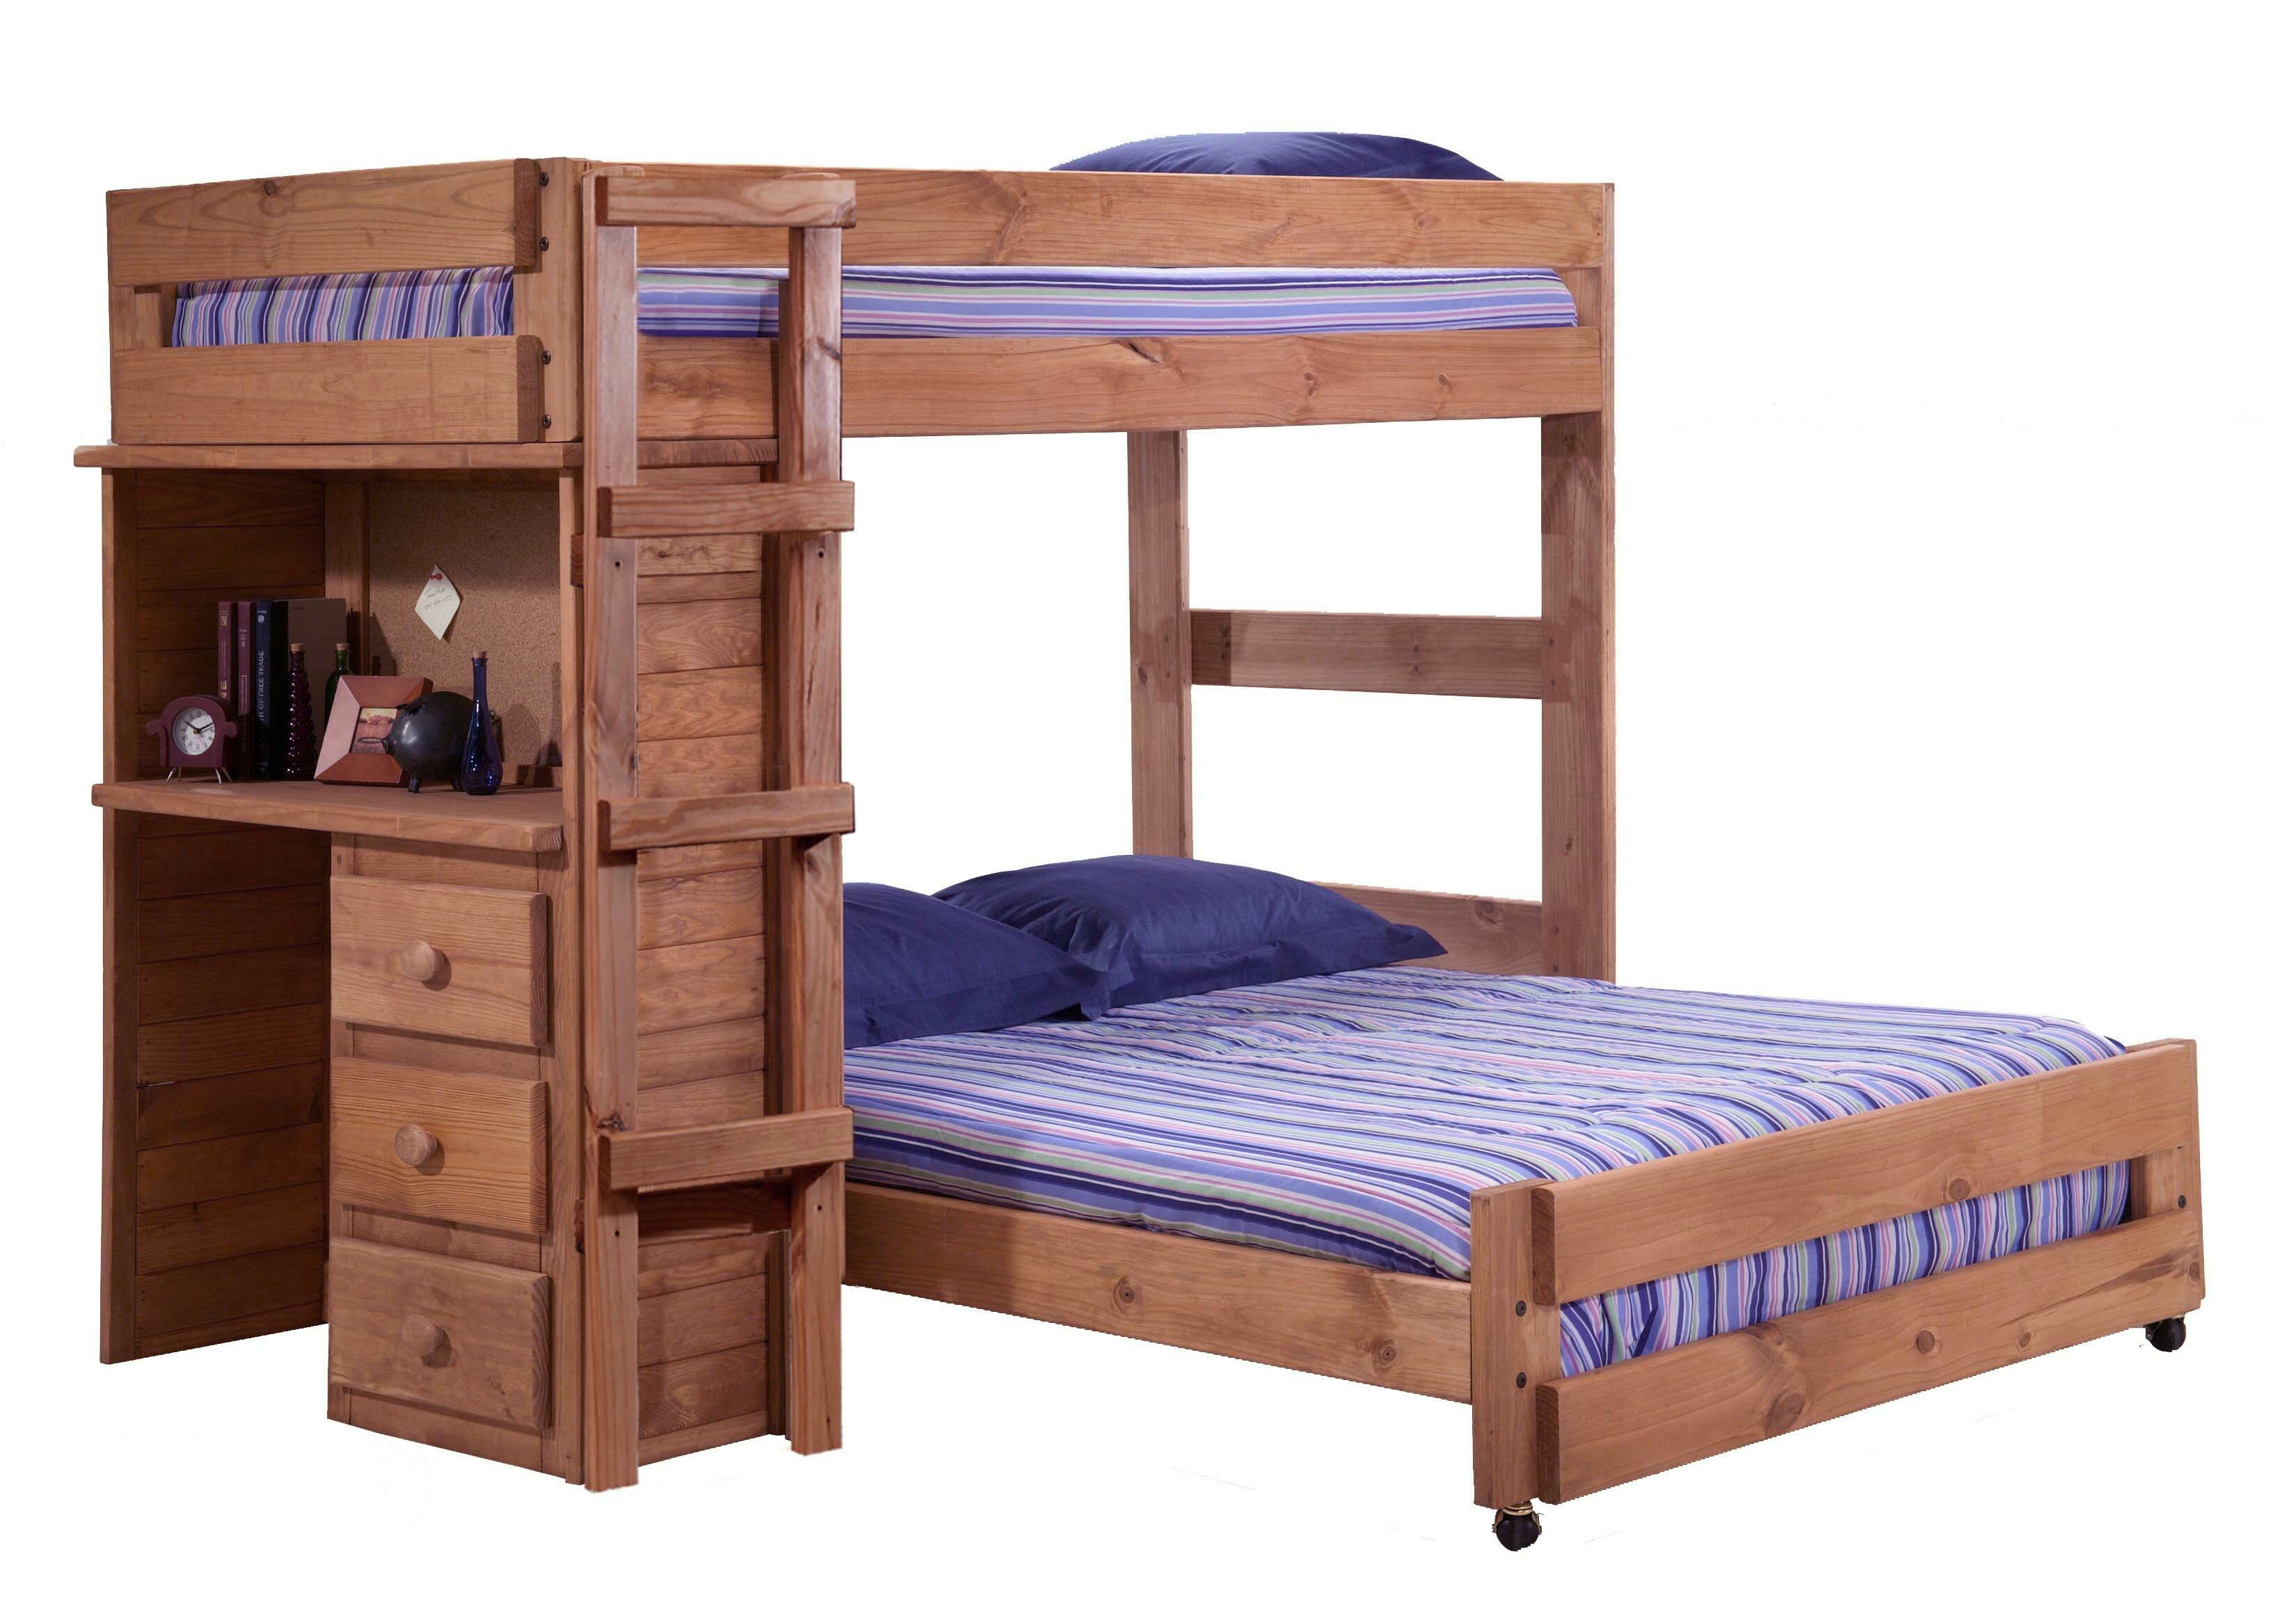 Harriet Bee Chumbley Twin Over Full L Shaped Bunk Bed With Desk Reviews Wayfair